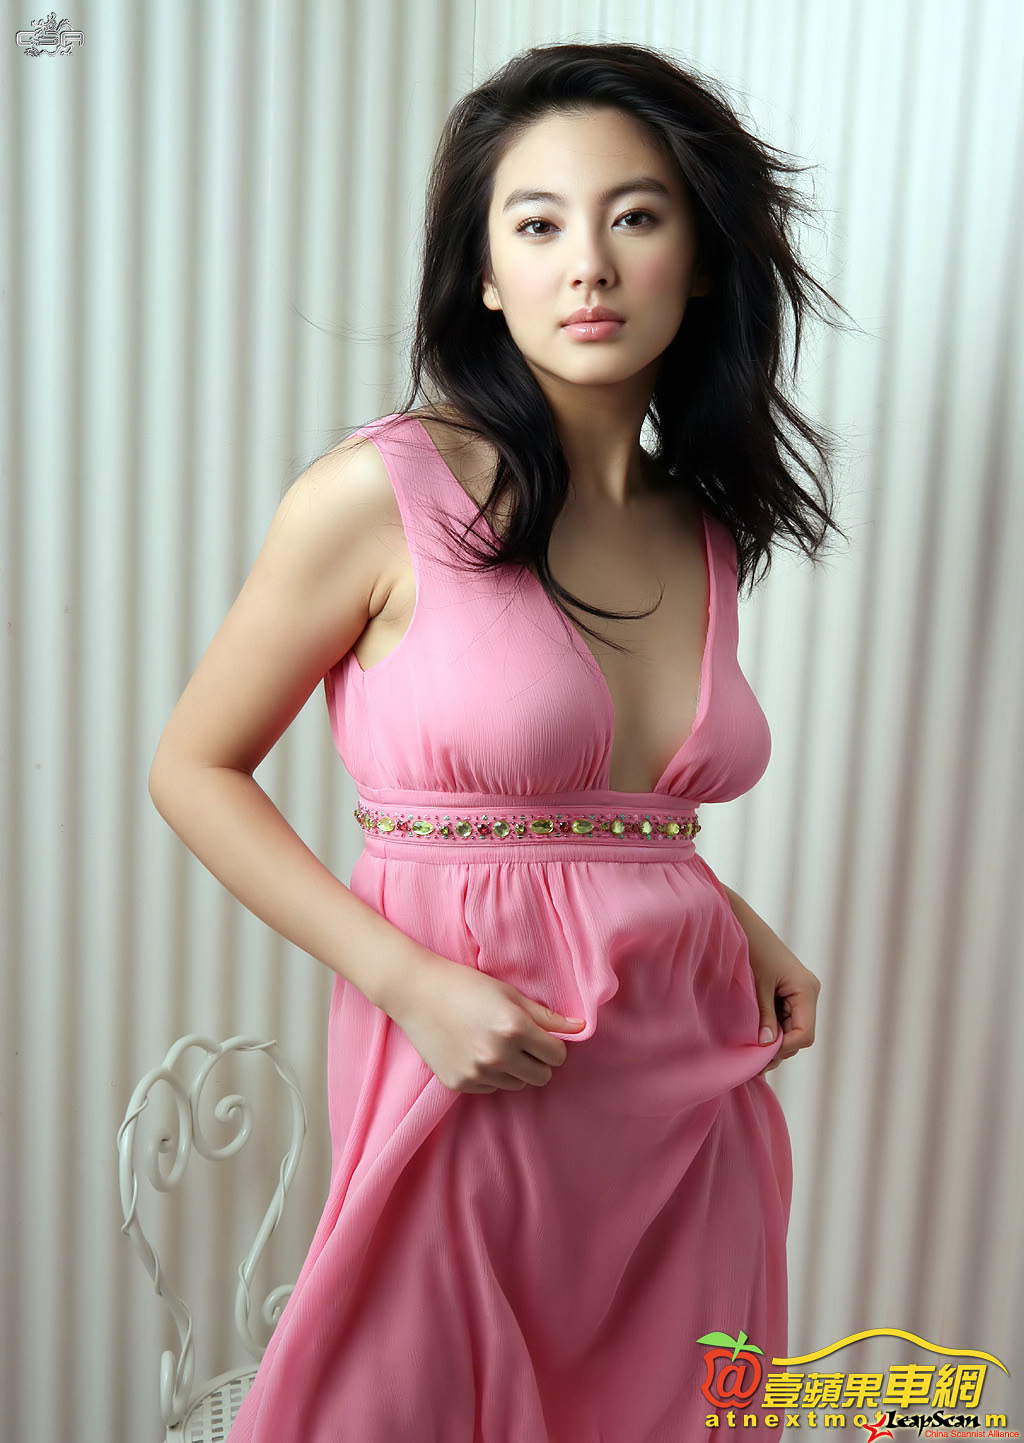 Asian photo art models